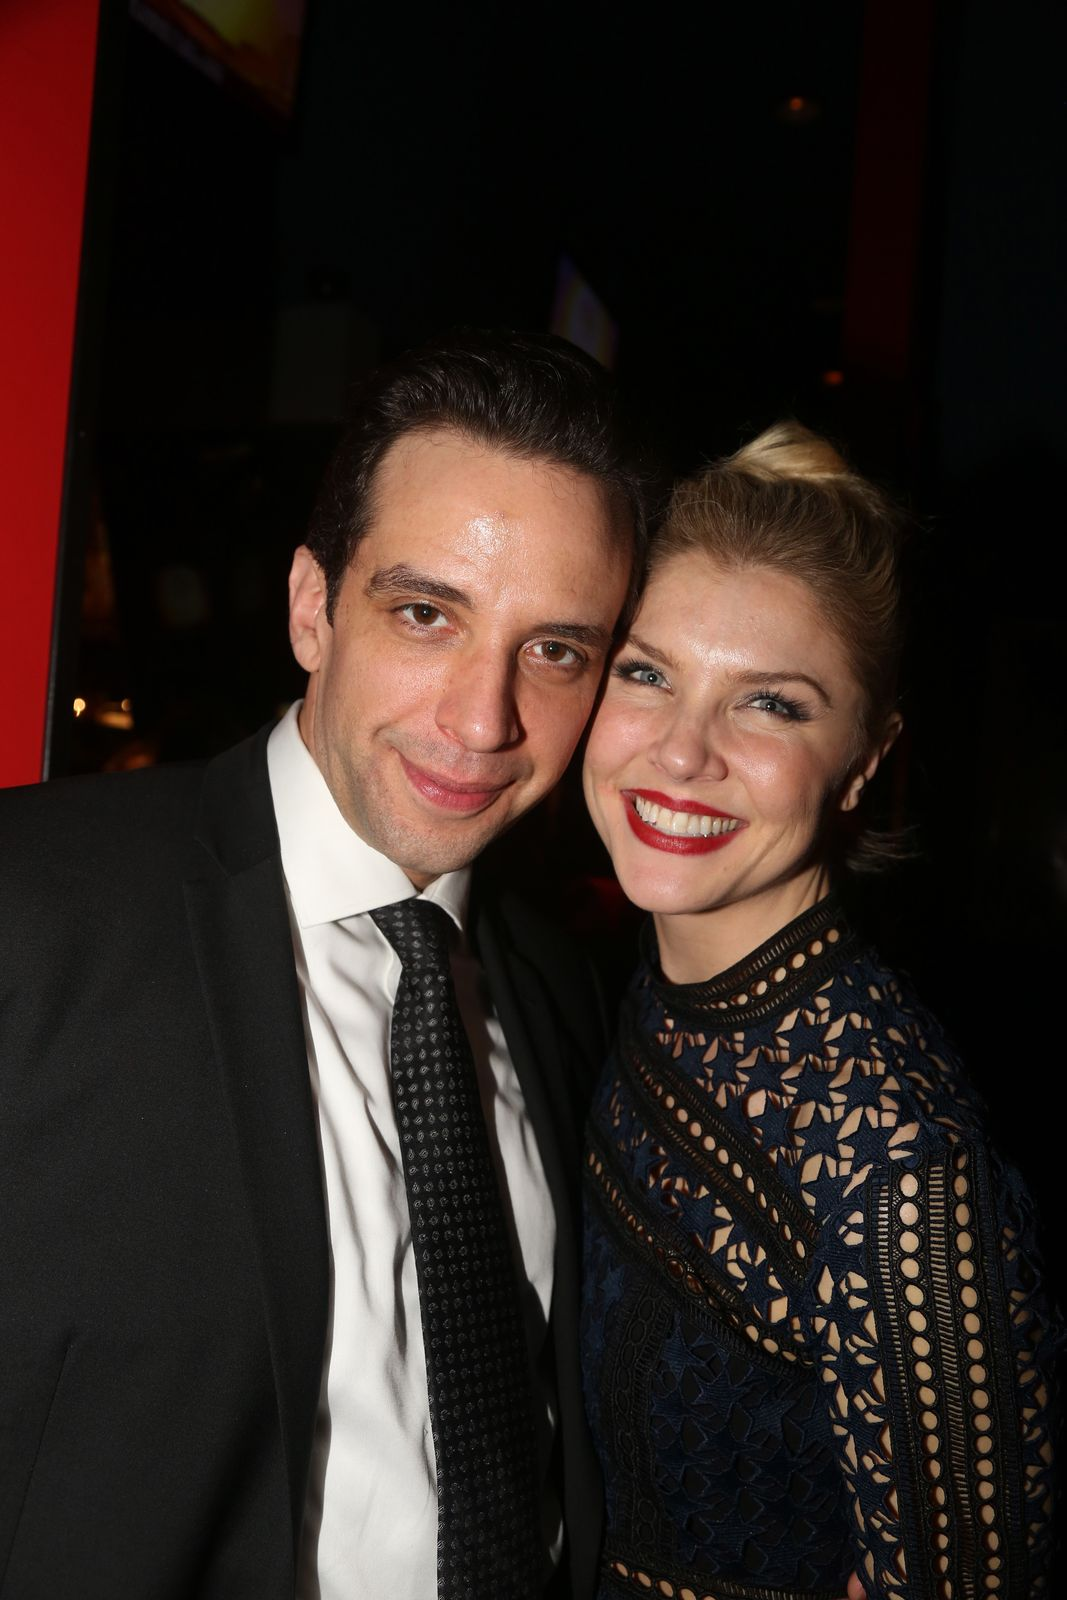 """Nick Cordero and Amanda Klootsat the after-party for Manhattan Concert Production's Broadway Series """"Crazy For You"""" One Night Only Production on February 19, 2017, in New York City 